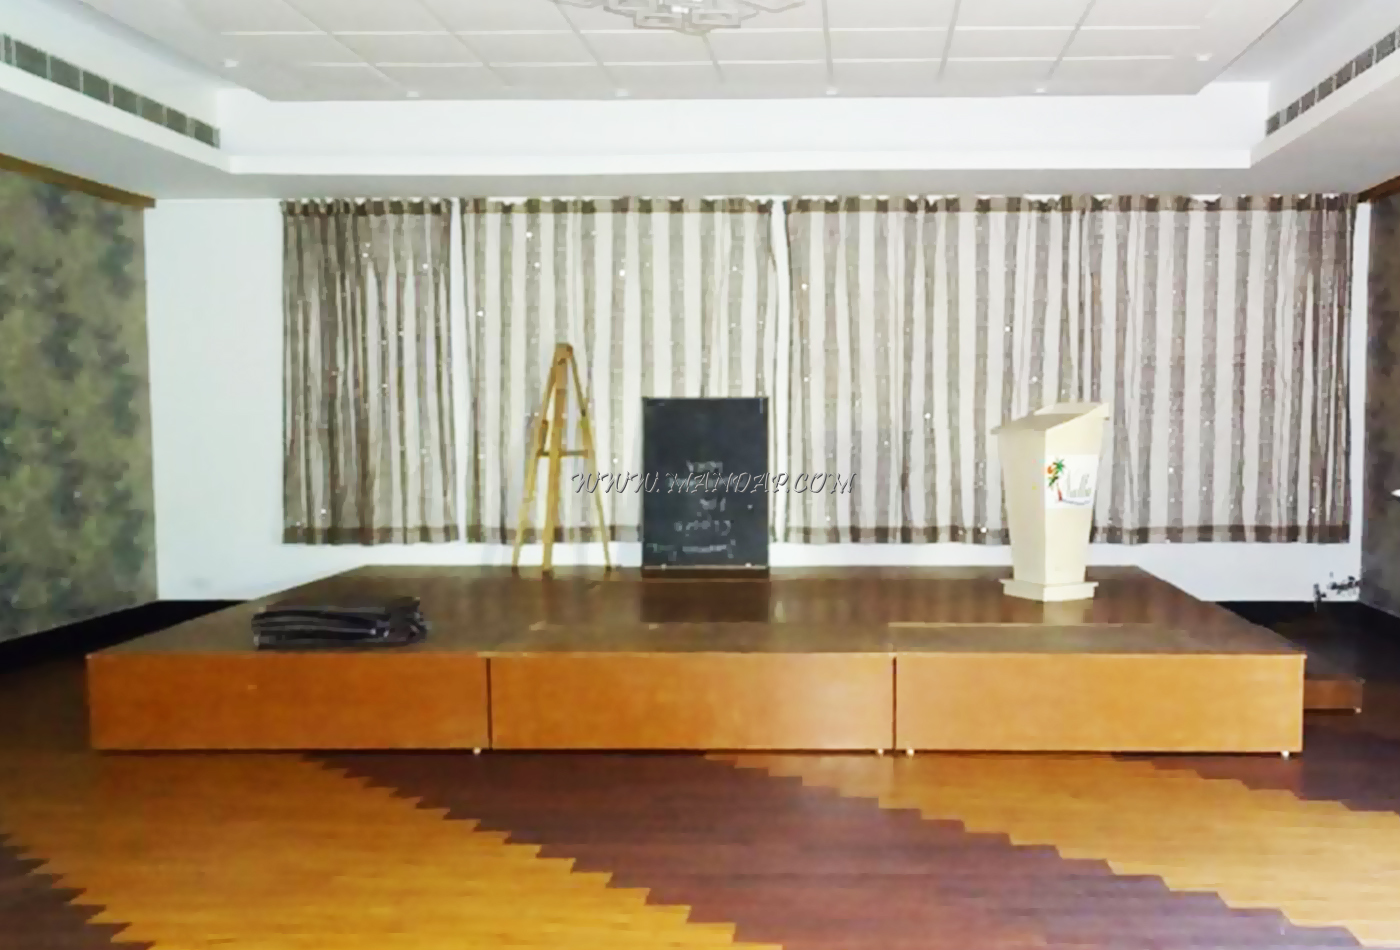 Find the availability of the Nalla Beh Resort Hall (A/C) in Pondicherry Bazaar, Pondicherry and avail special offers